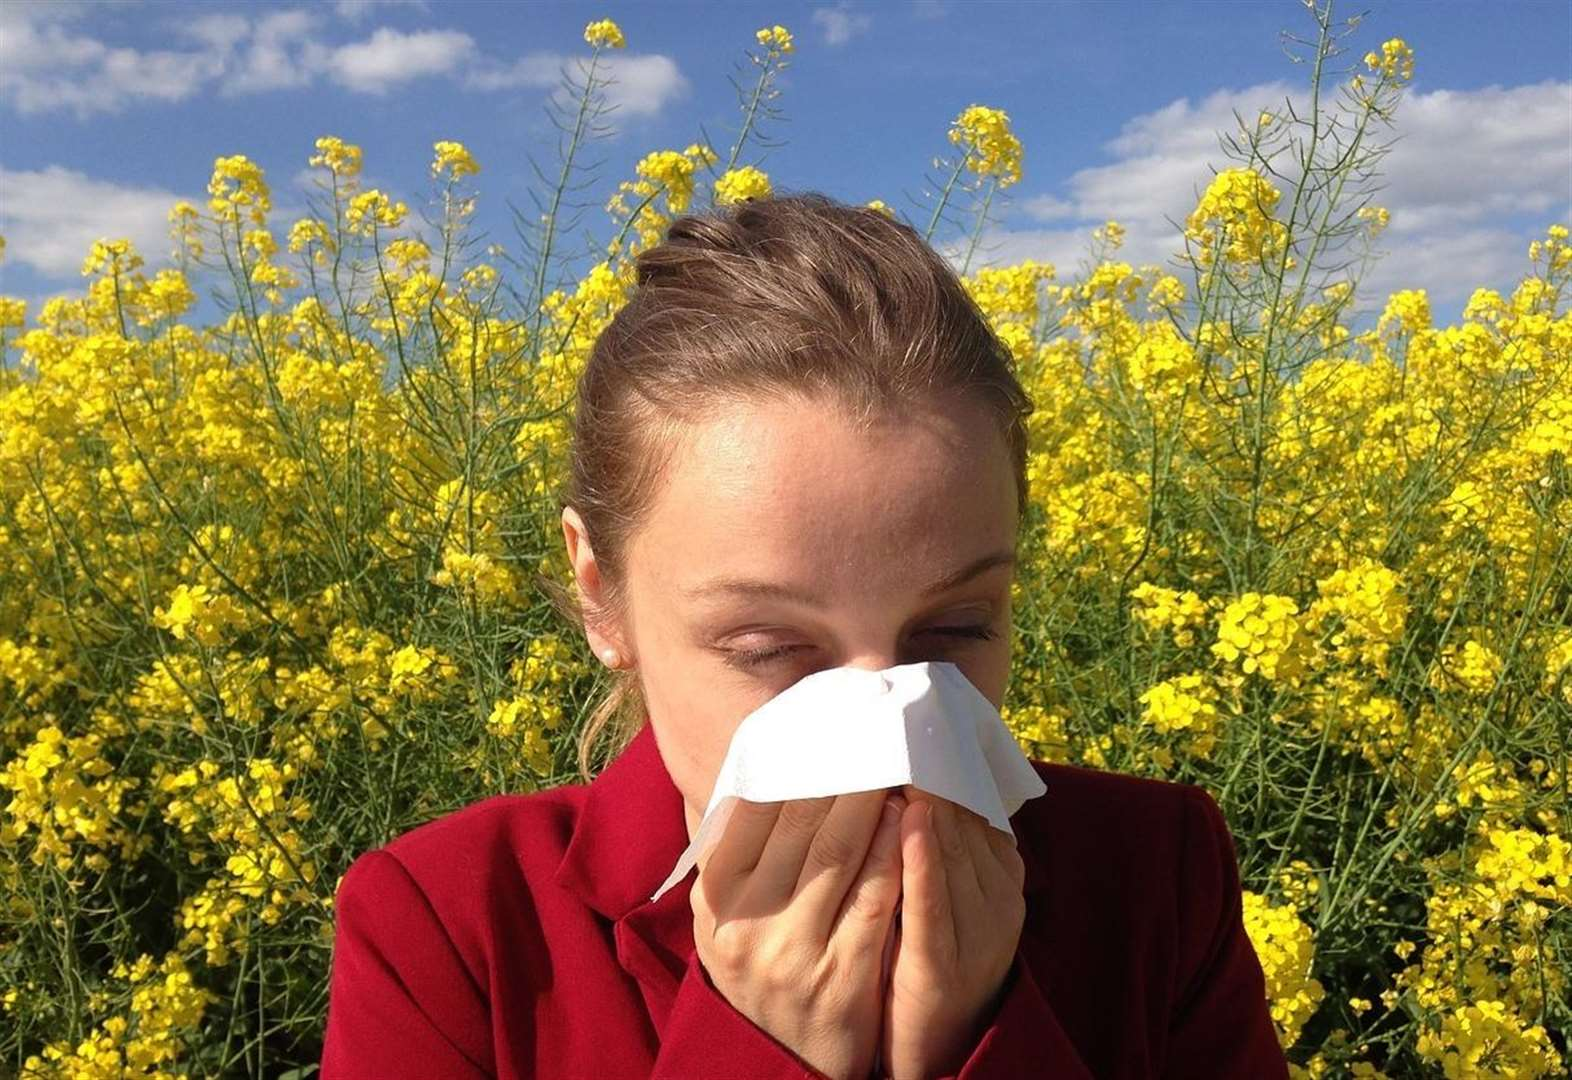 DOCTOR CALLING: Hated hay fever